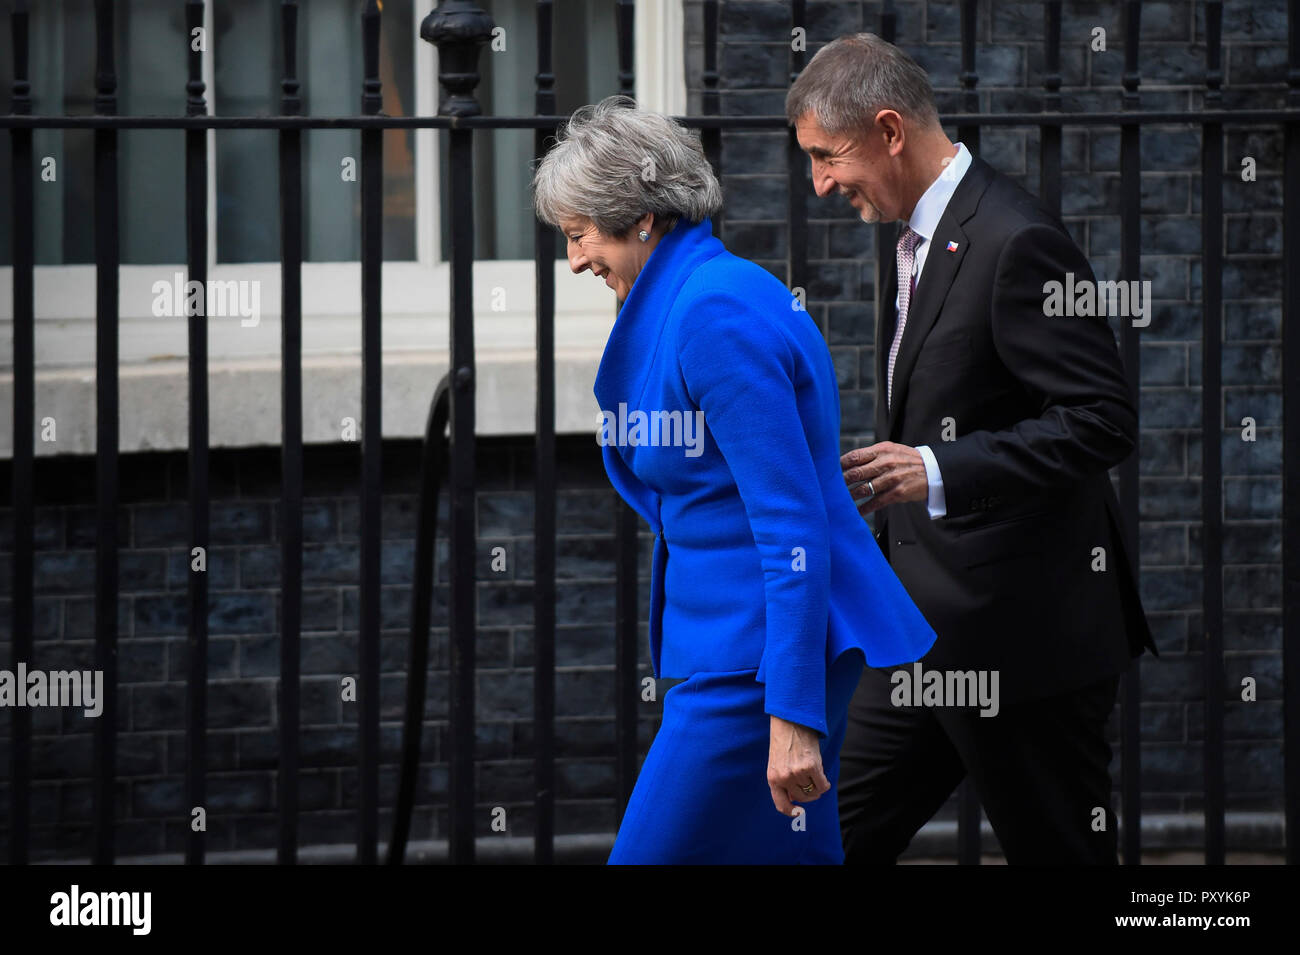 London, UK.  24 October 2018.  Theresa May, Prime Minister, greets Andrej Babis, Czech Prime Minister at Number 10 Downing Street. Credit: Stephen Chung / Alamy Live News - Stock Image